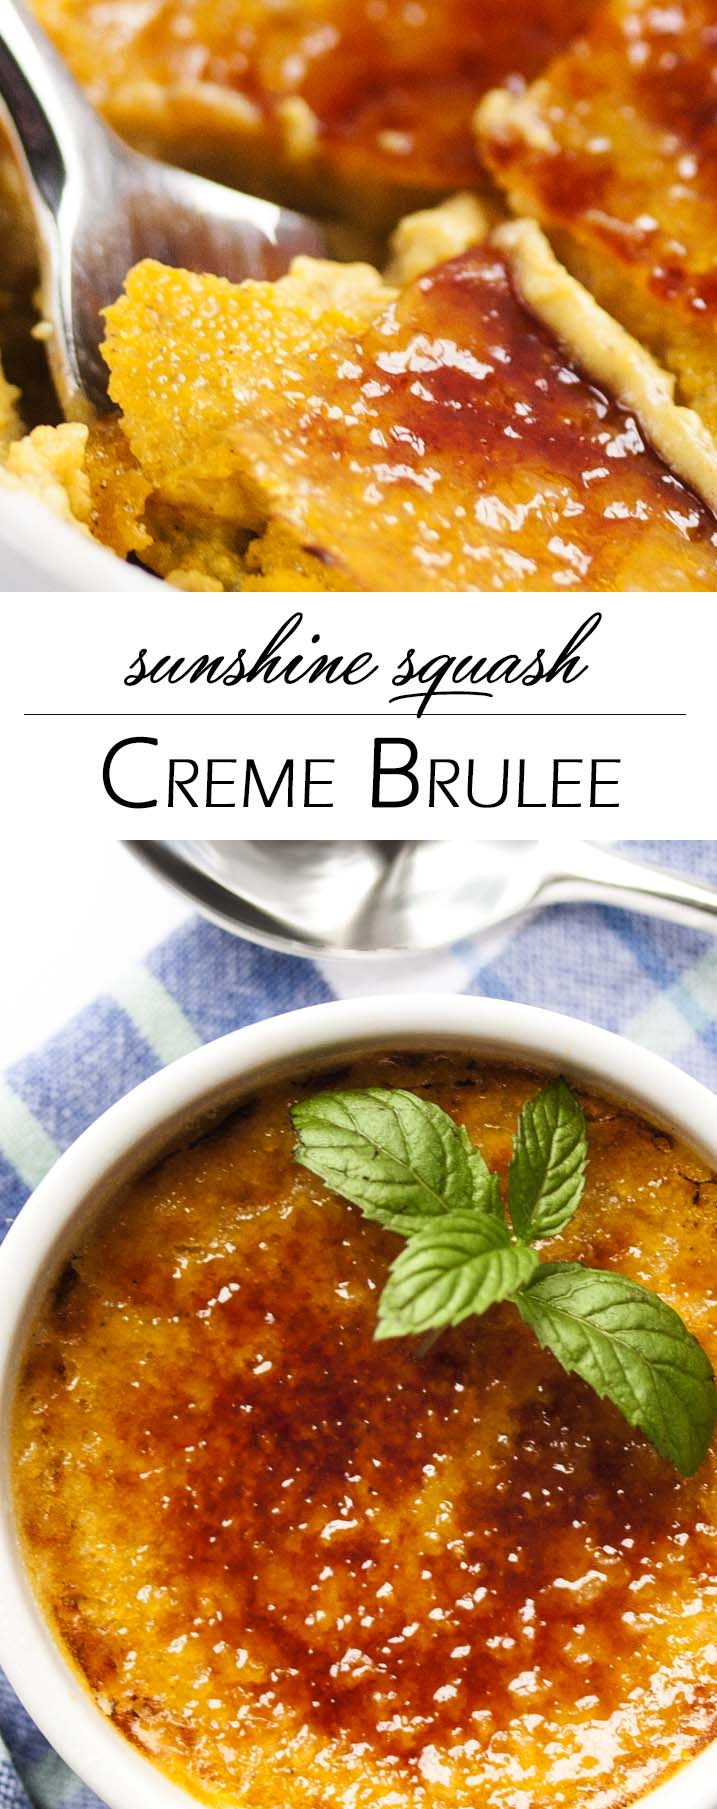 Sunshine Squash Creme Brulee - Caramelized sugar topping and a yummy, squash custard makes for a dish that is creamy, comforting and a great way to make something different with winter squash. | justalittlebitofbacon.com